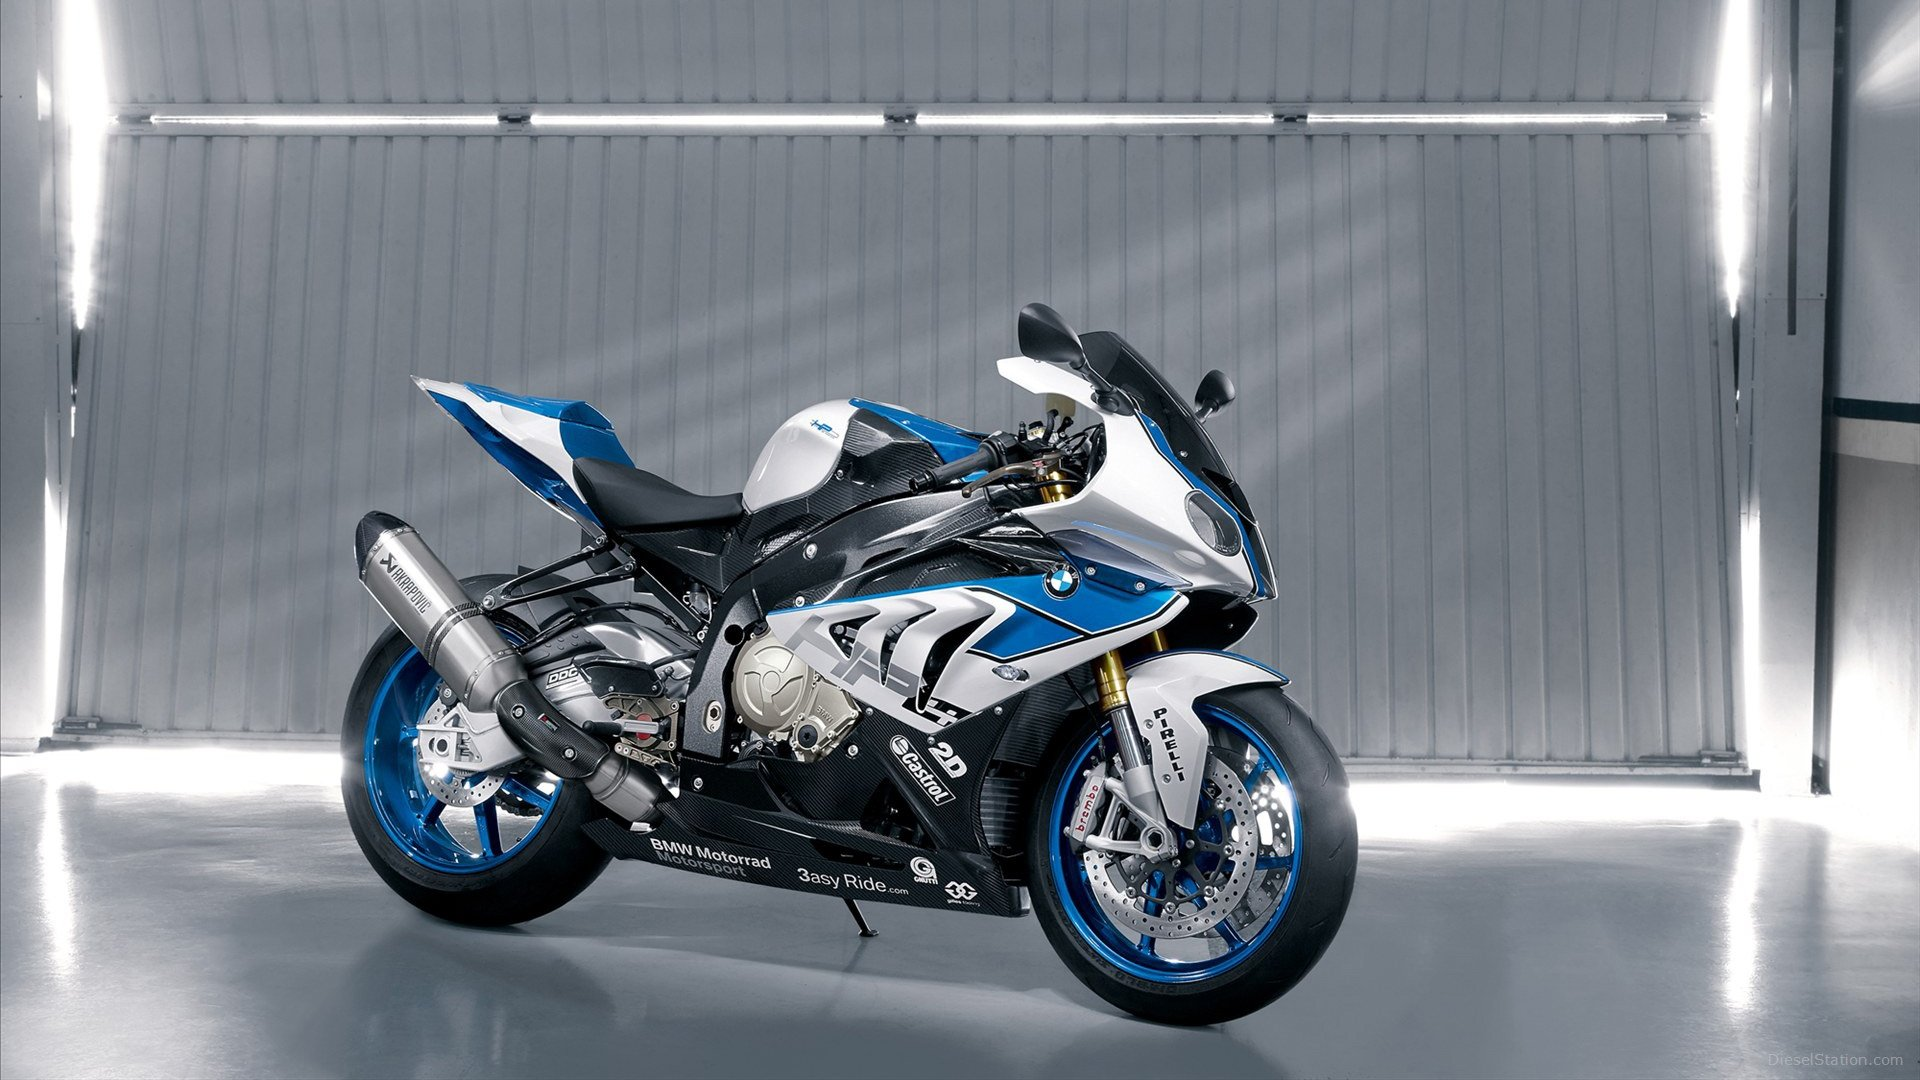 BMW HP4 HD Wallpaper Background Image 1920x1080 ID526446 1920x1080